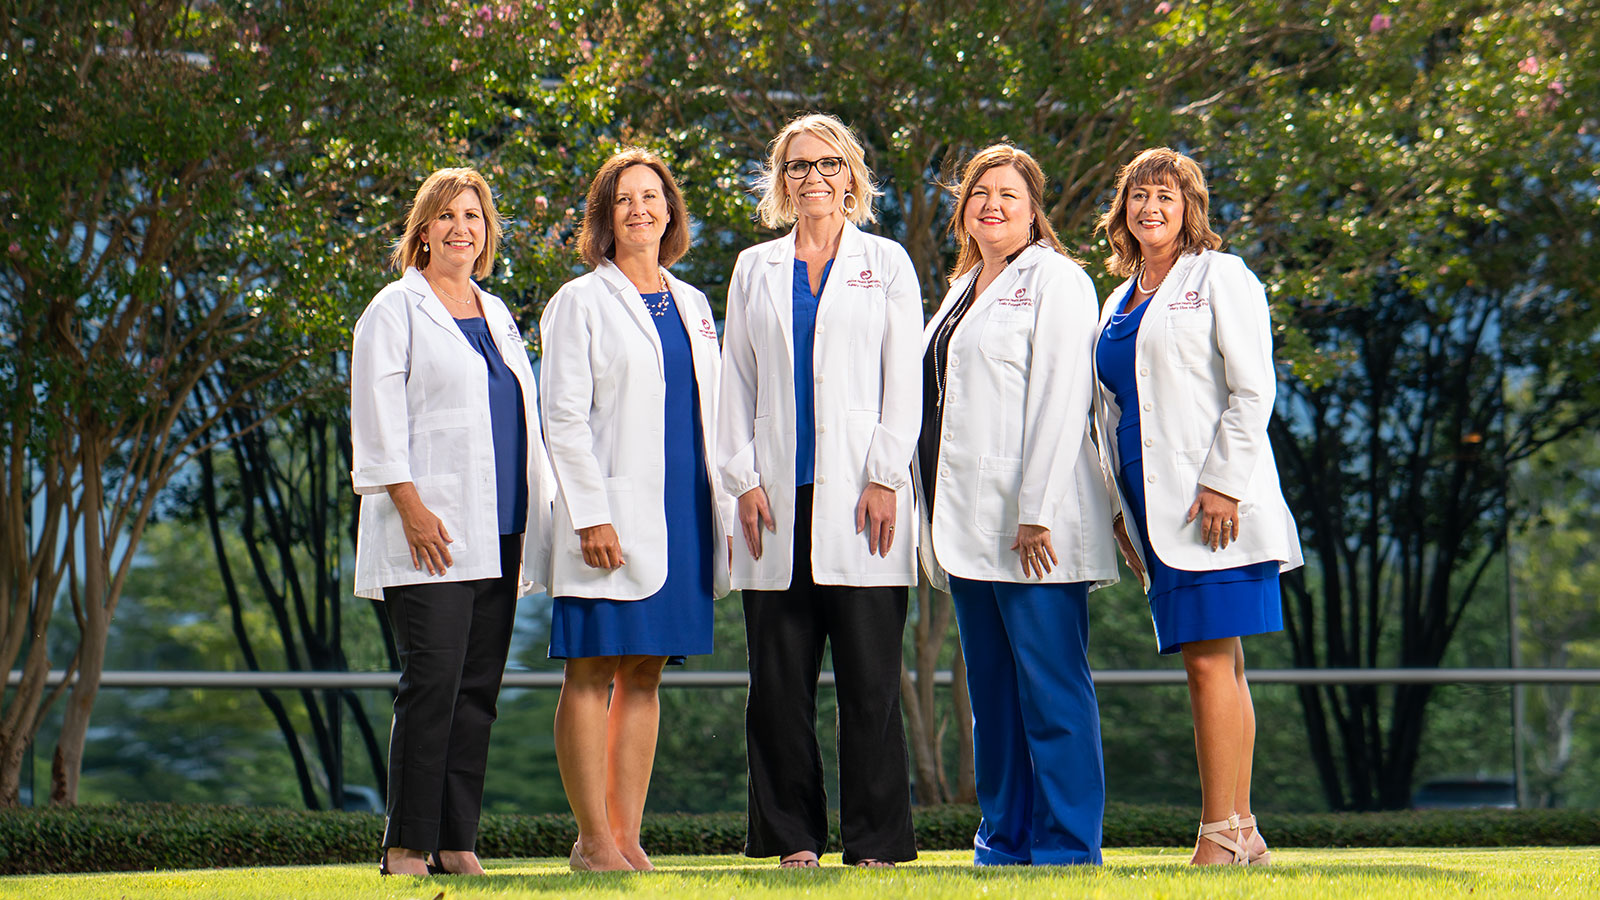 The Nurses at Digestive Health Specialists